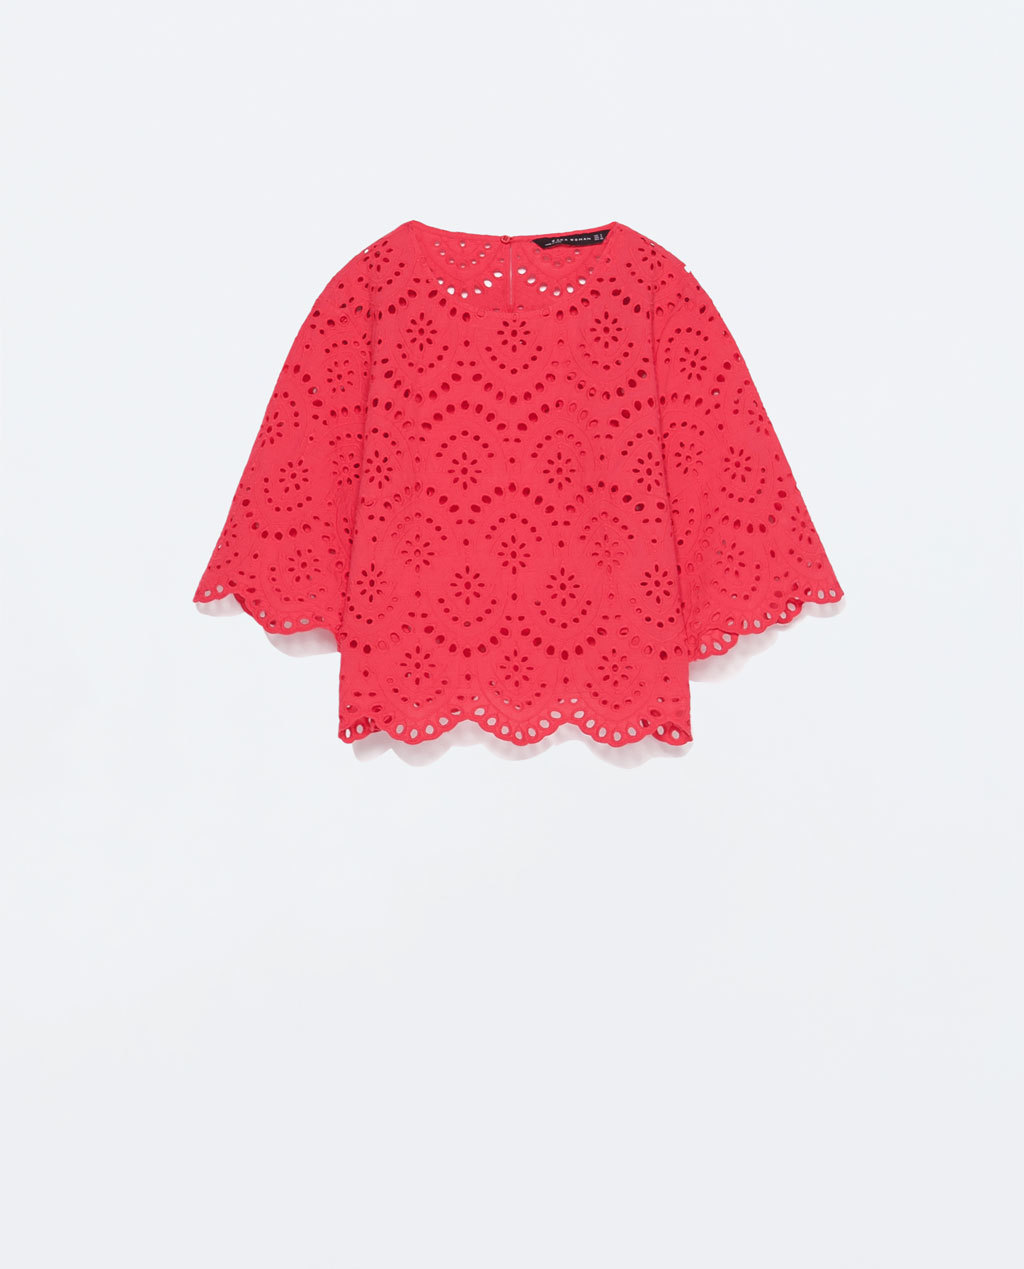 Cropped Embroidered Laser Cut Top - sleeve style: dolman/batwing; pattern: plain; predominant colour: true red; occasions: casual, creative work; length: standard; style: top; fibres: cotton - 100%; fit: straight cut; neckline: crew; sleeve length: half sleeve; texture group: cotton feel fabrics; pattern type: fabric; season: s/s 2015; wardrobe: highlight